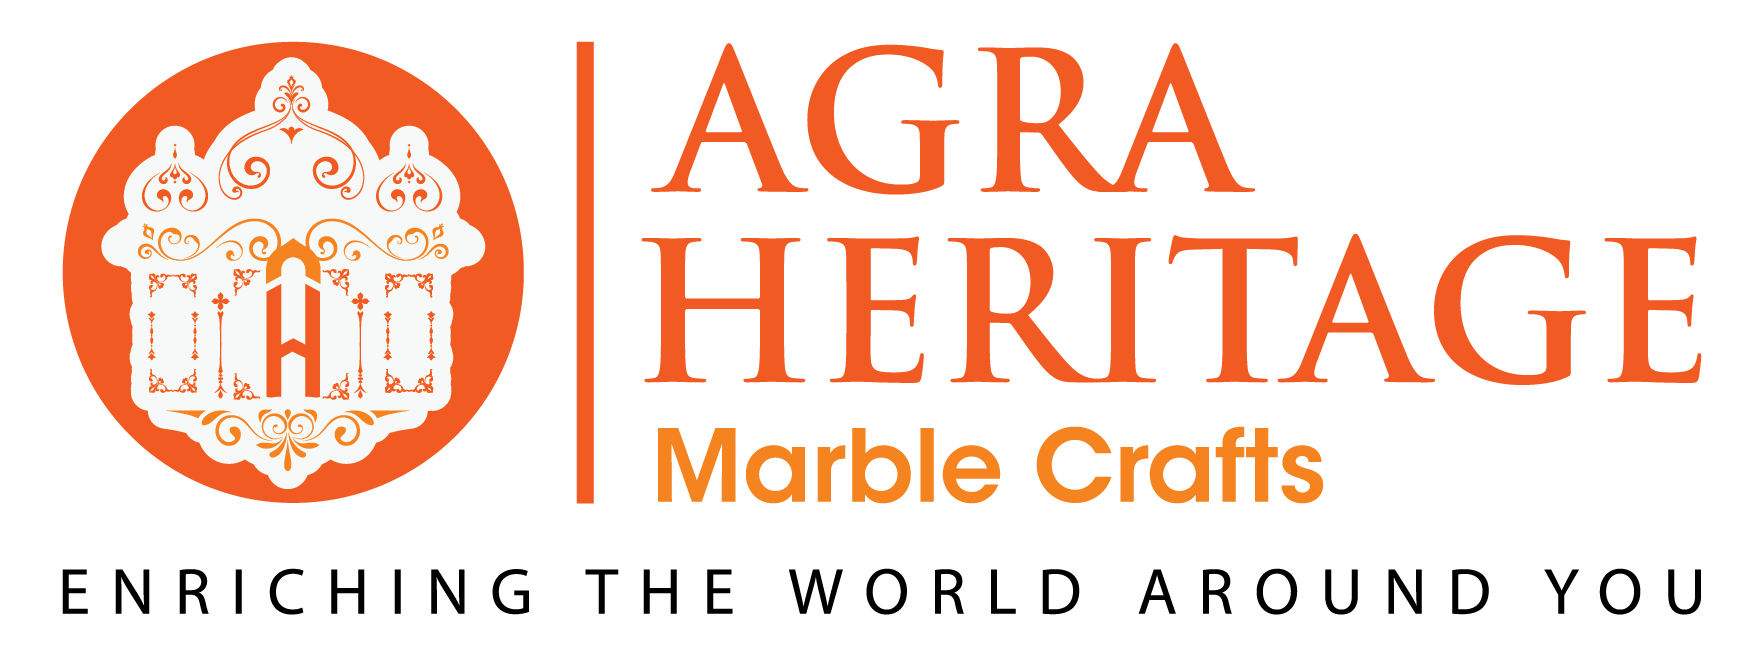 Welcome to Heritage Marble Crafts